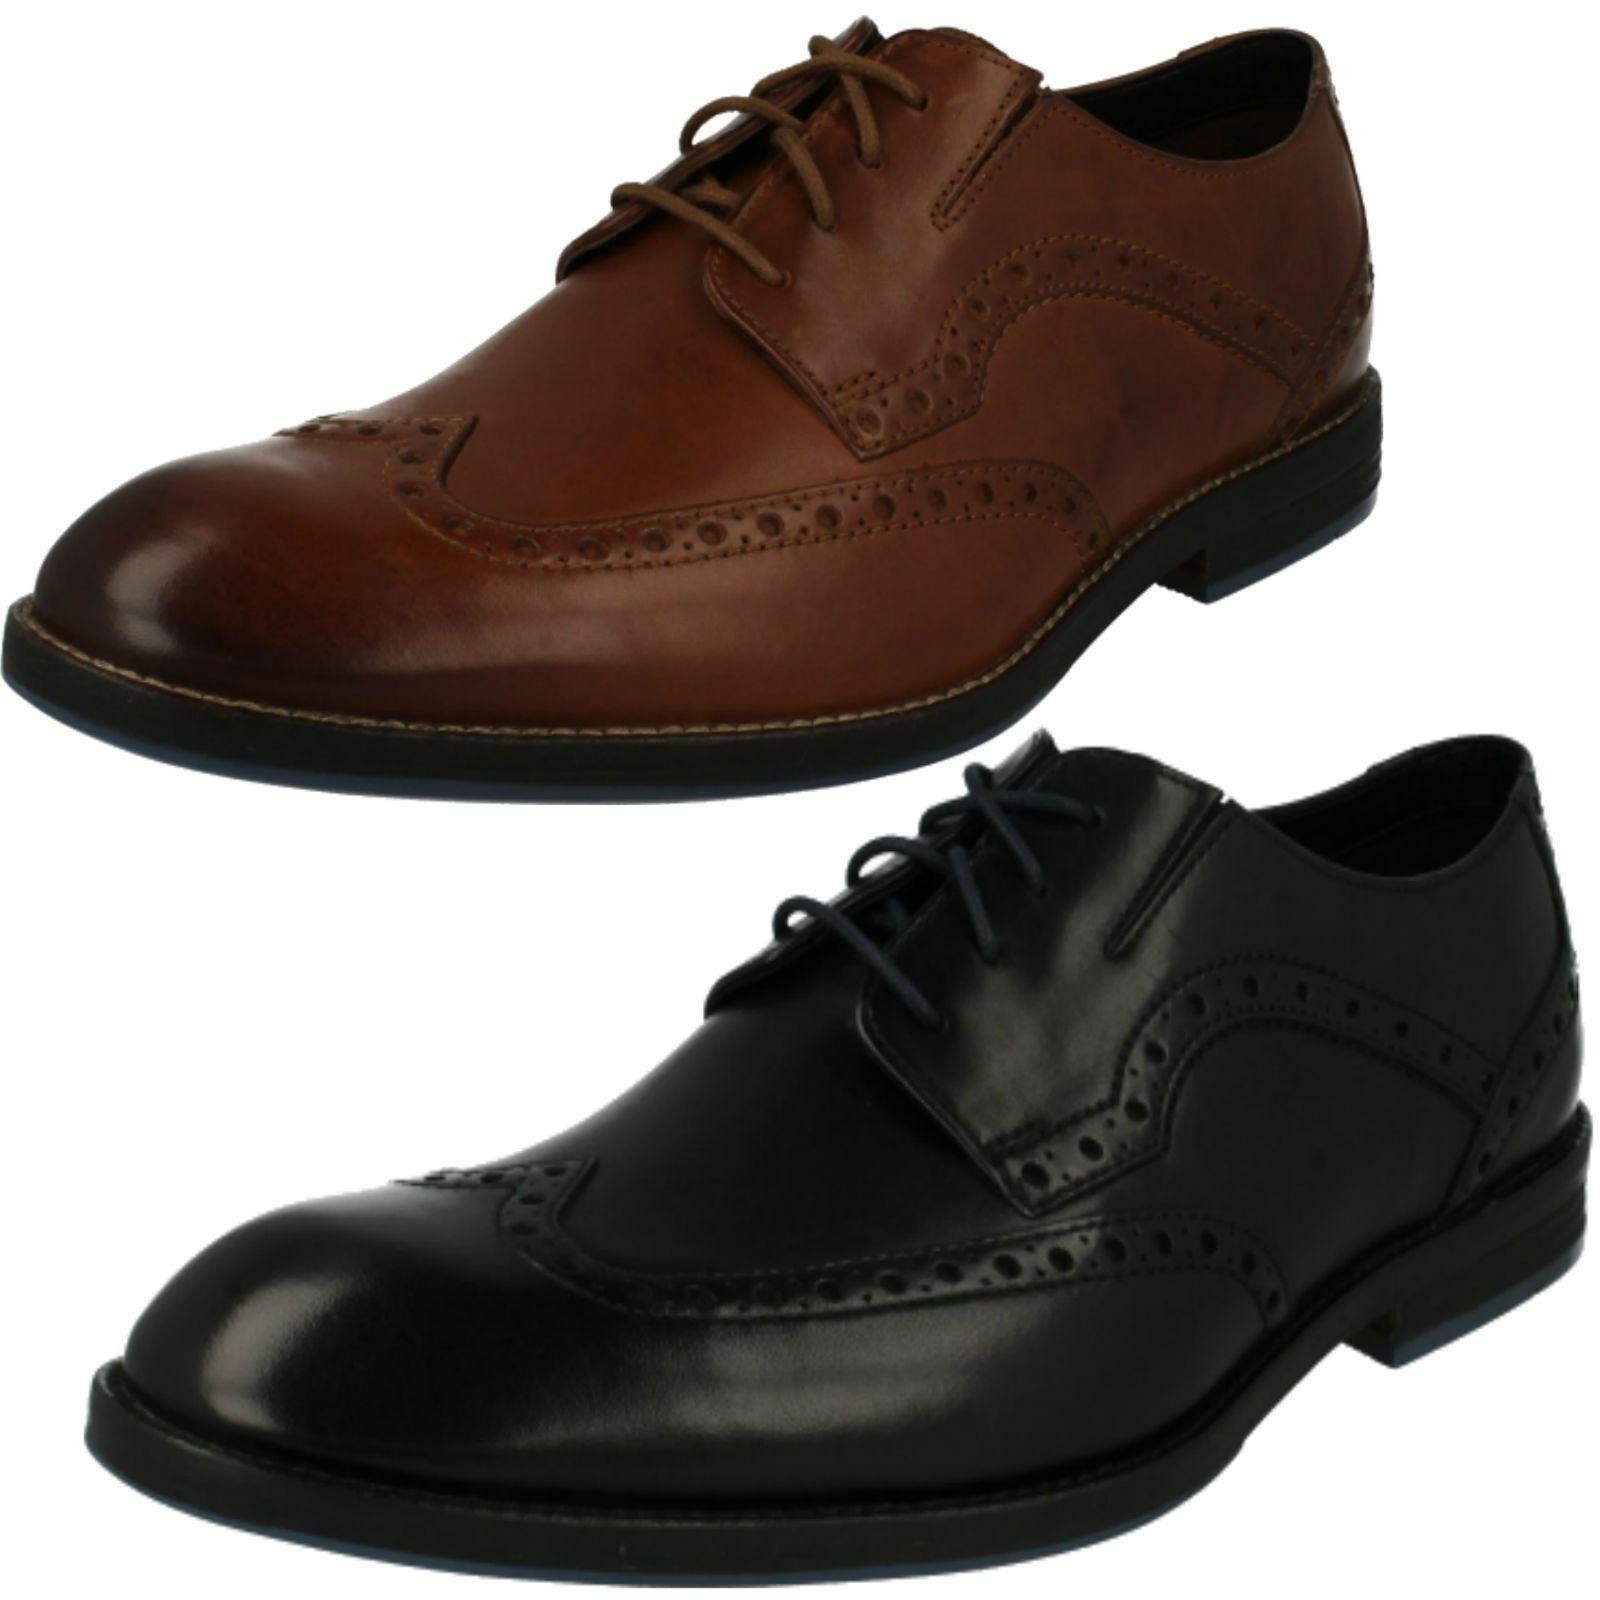 Mens Clarks Formal Brogues Lace Up Quality Leather Brogues Formal Prangley Limit 451f02